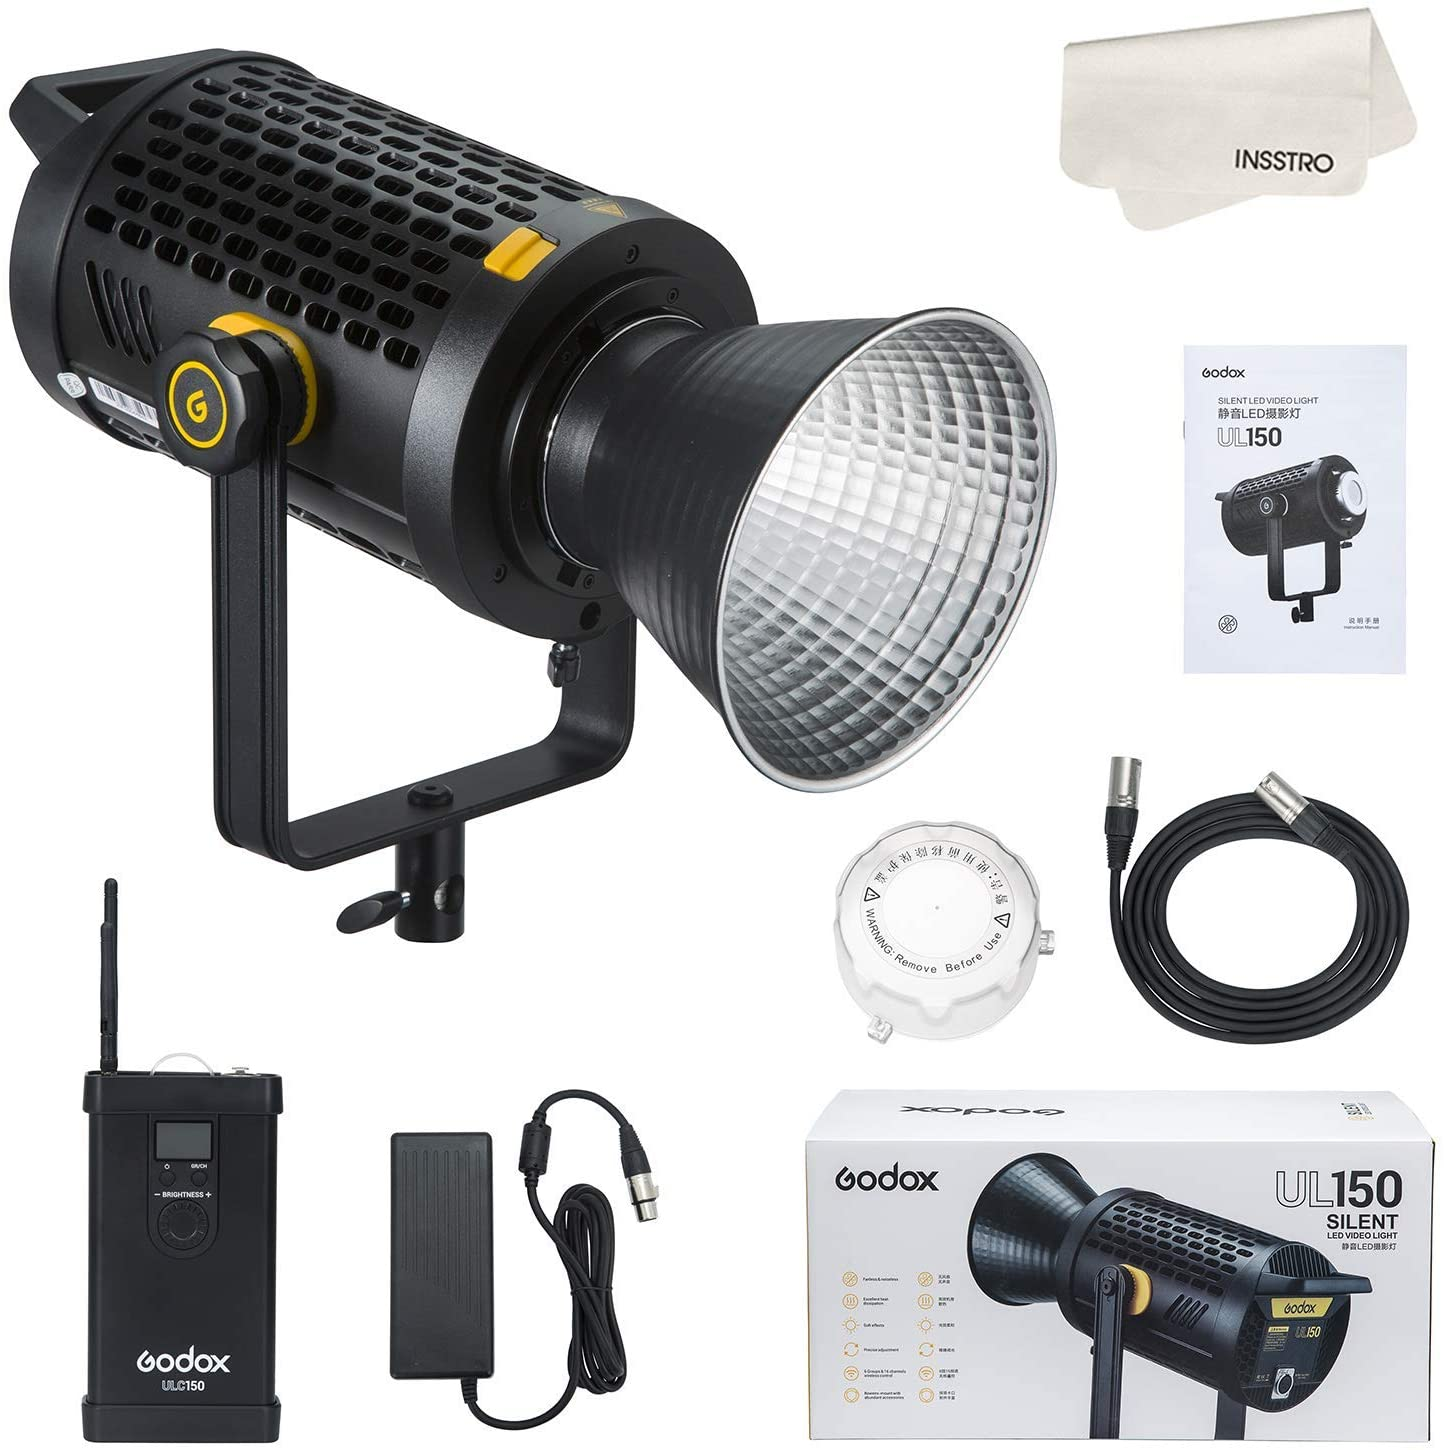 Godox UL150 Continuous LED Light with reflector, remote and power supply.